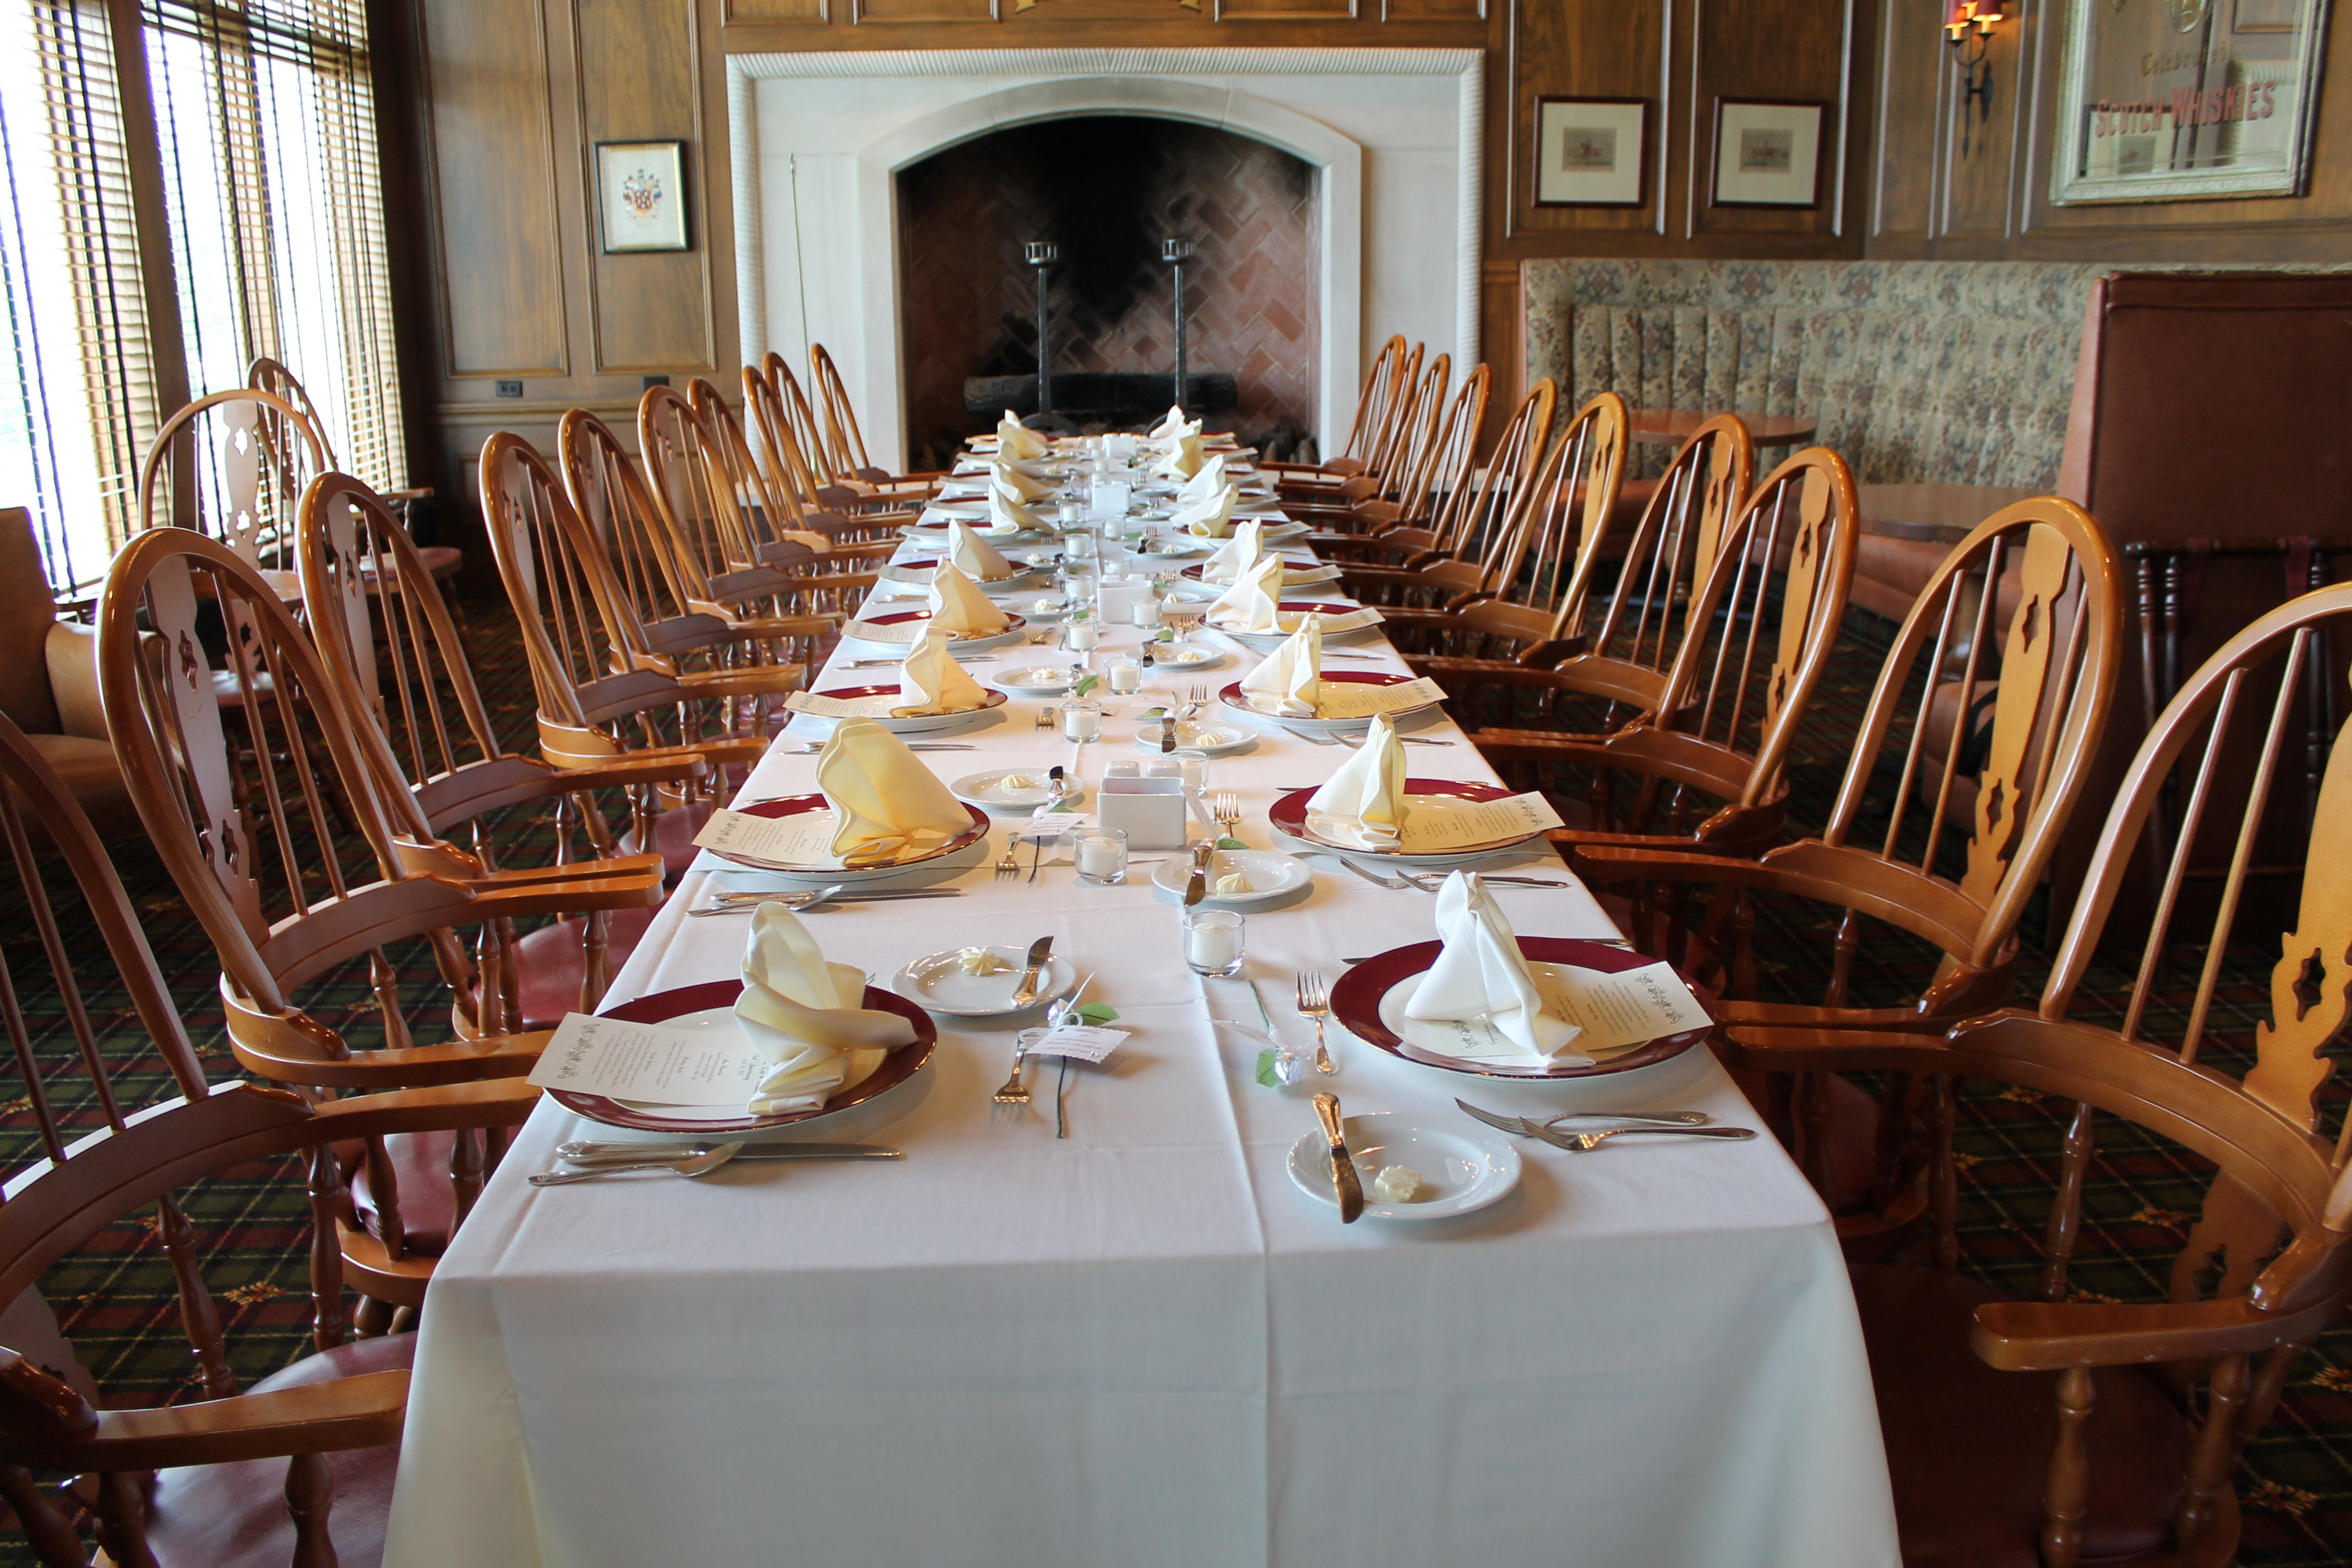 Long Table With Setting and Chair on the Side4